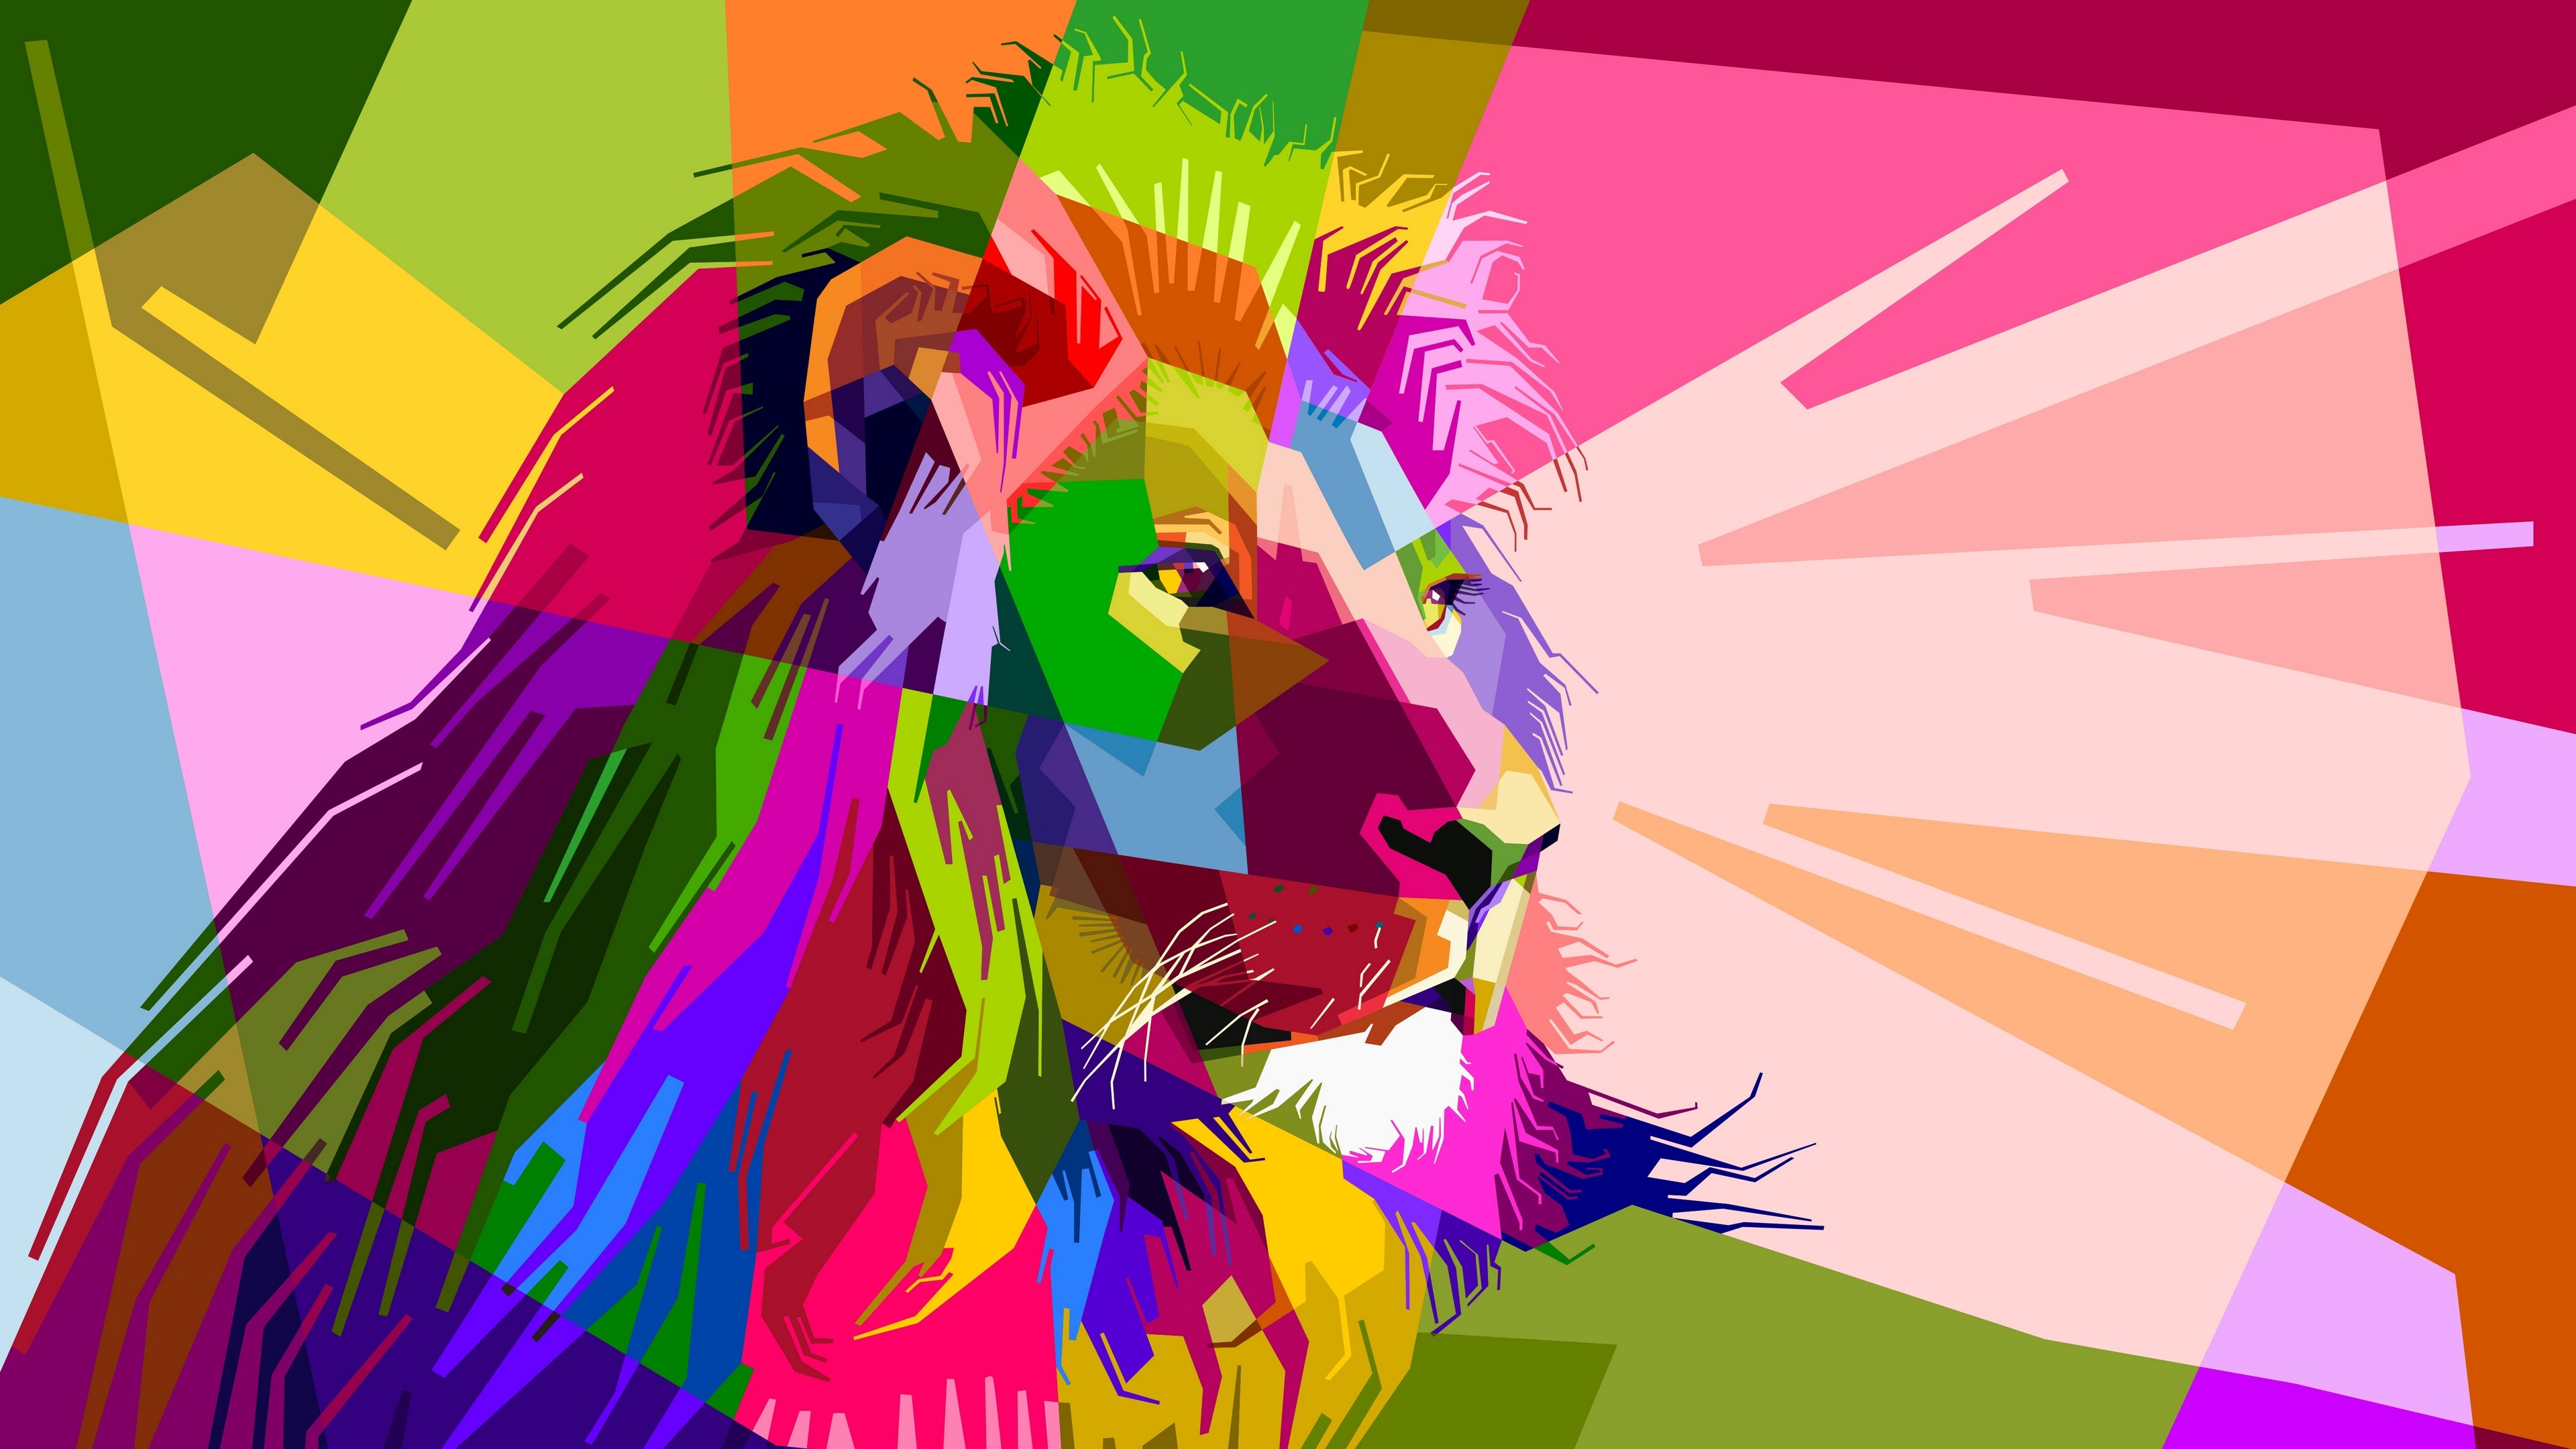 Colorful 4k Wallpapers For Your Desktop Or Mobile Screen